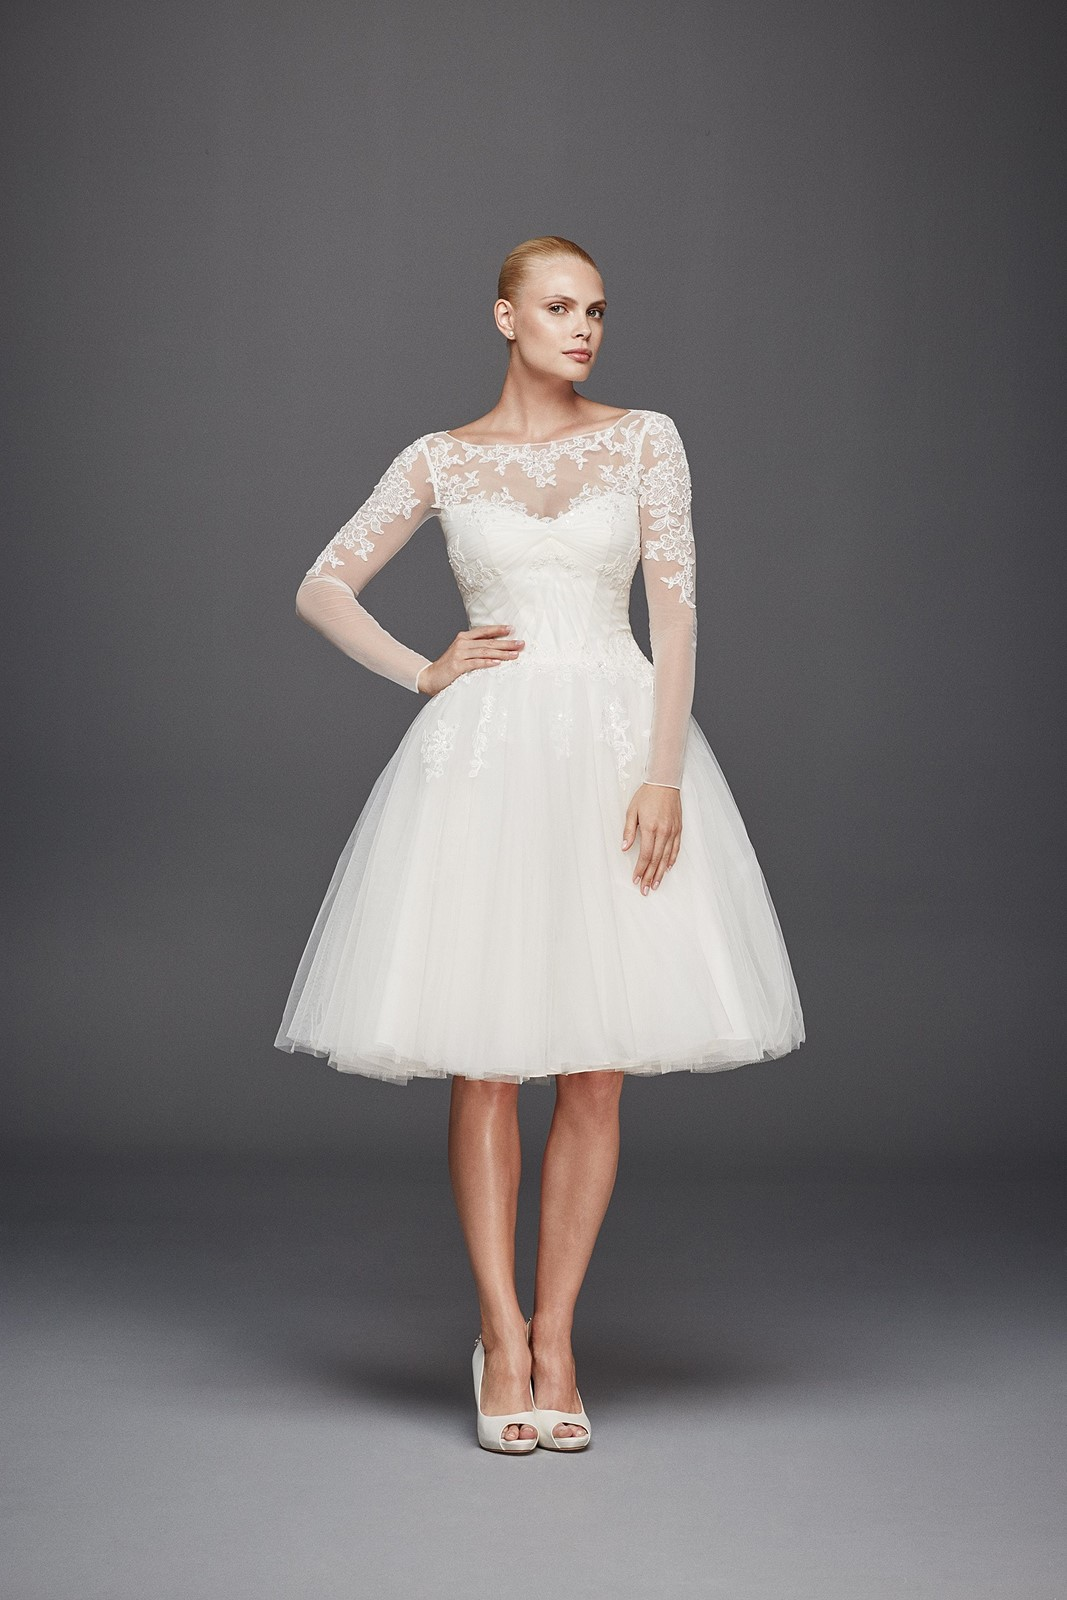 3d02c8ecccf Some brides say yes to selling their dress - Northwest